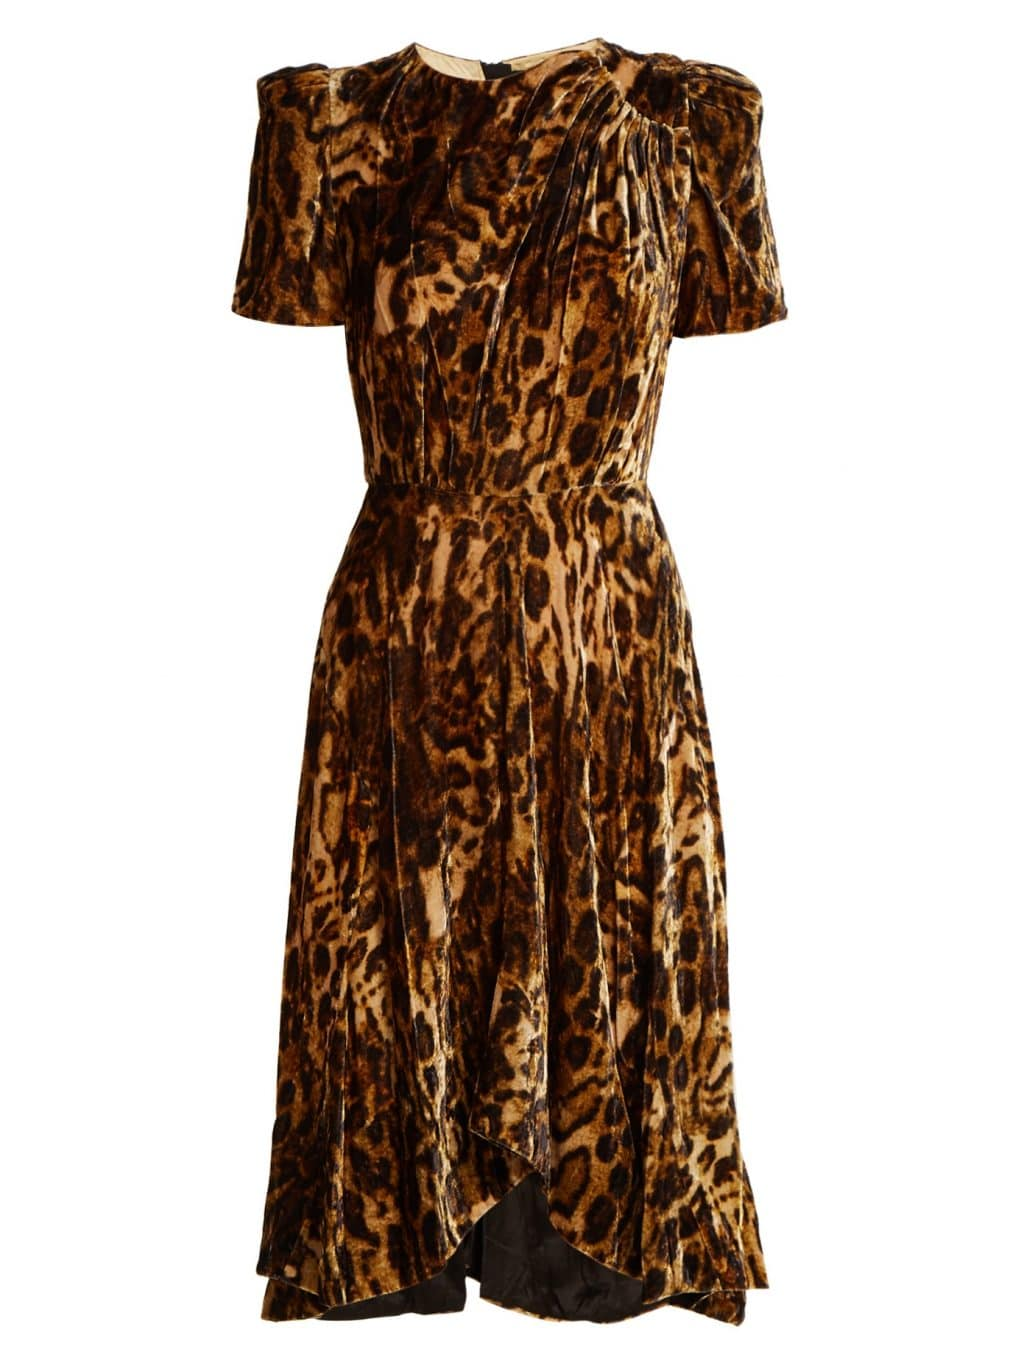 ISABEL MARANT Ulia Leopard Print Velvet Brown Dress